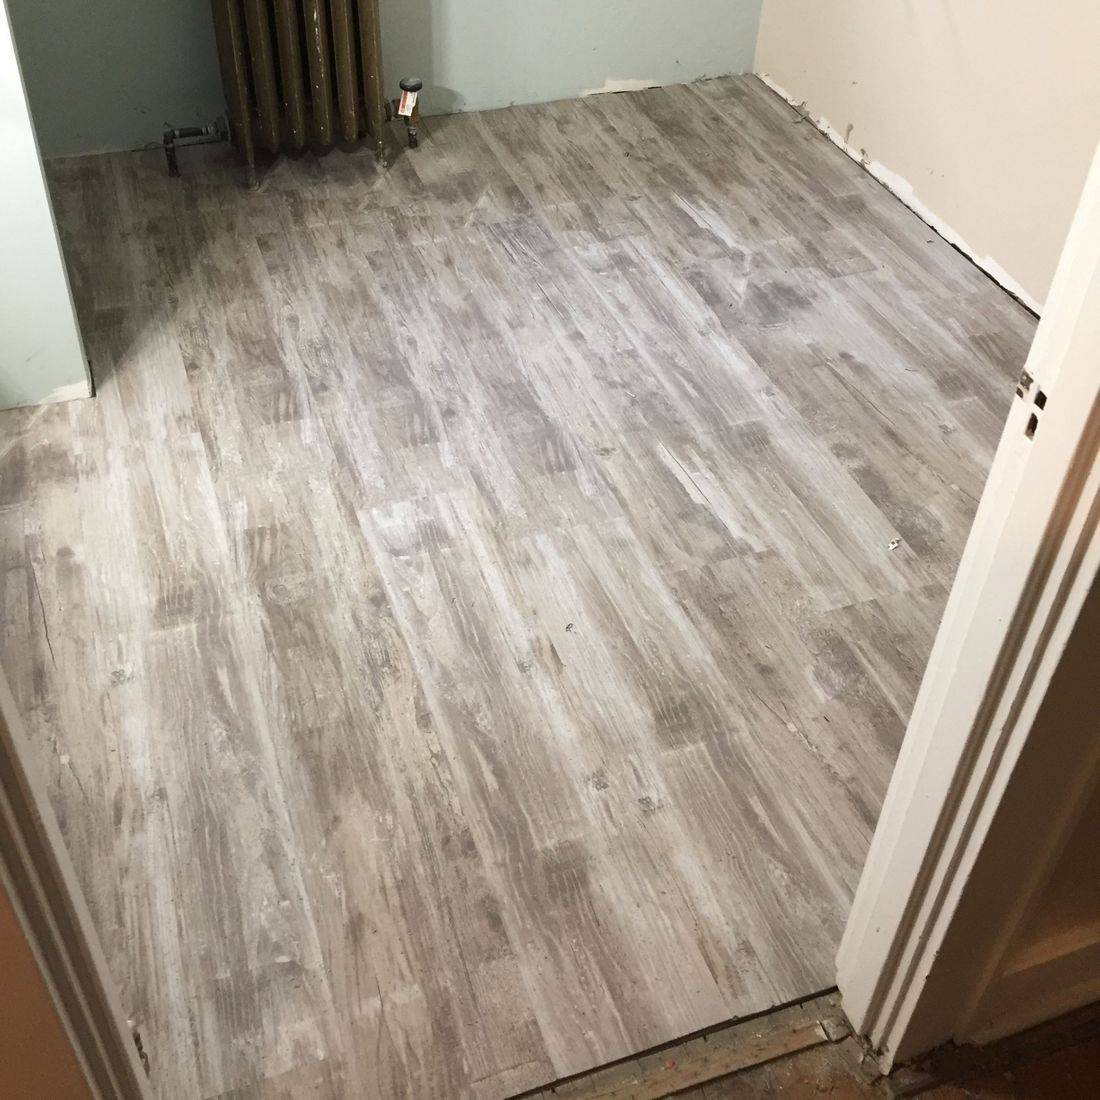 After/Finished Floor